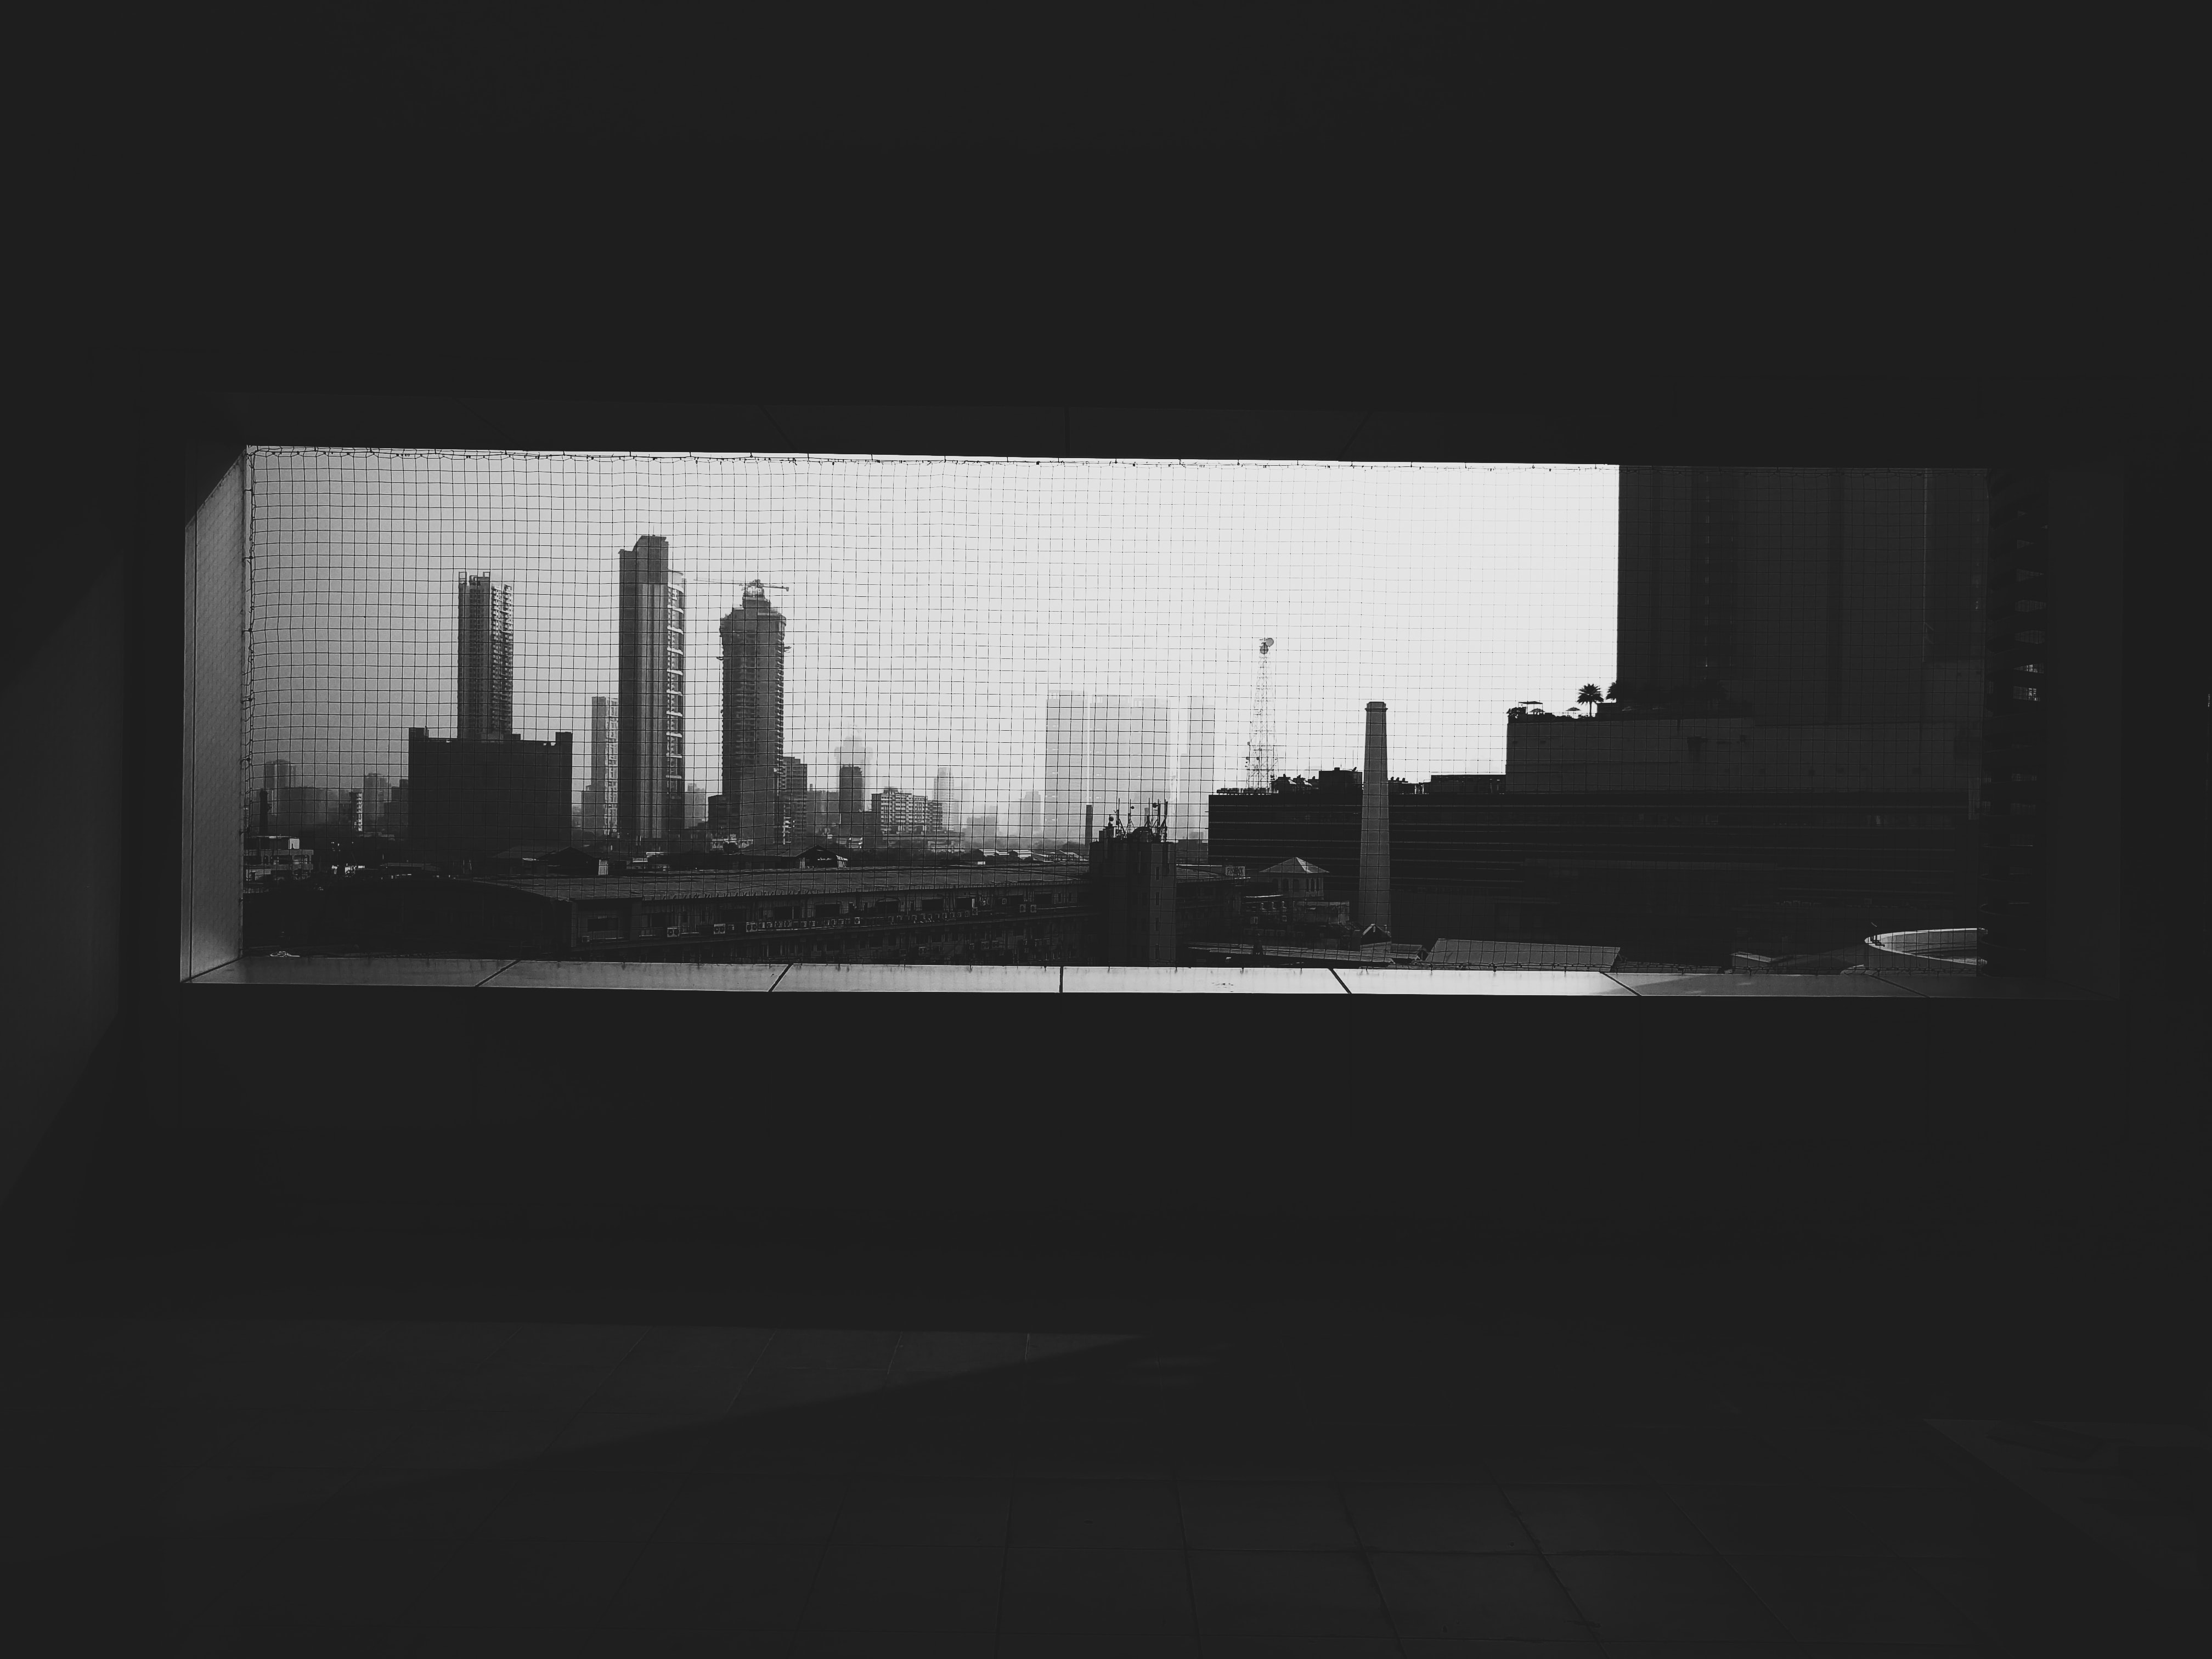 grayscale photo of highrise city buildings